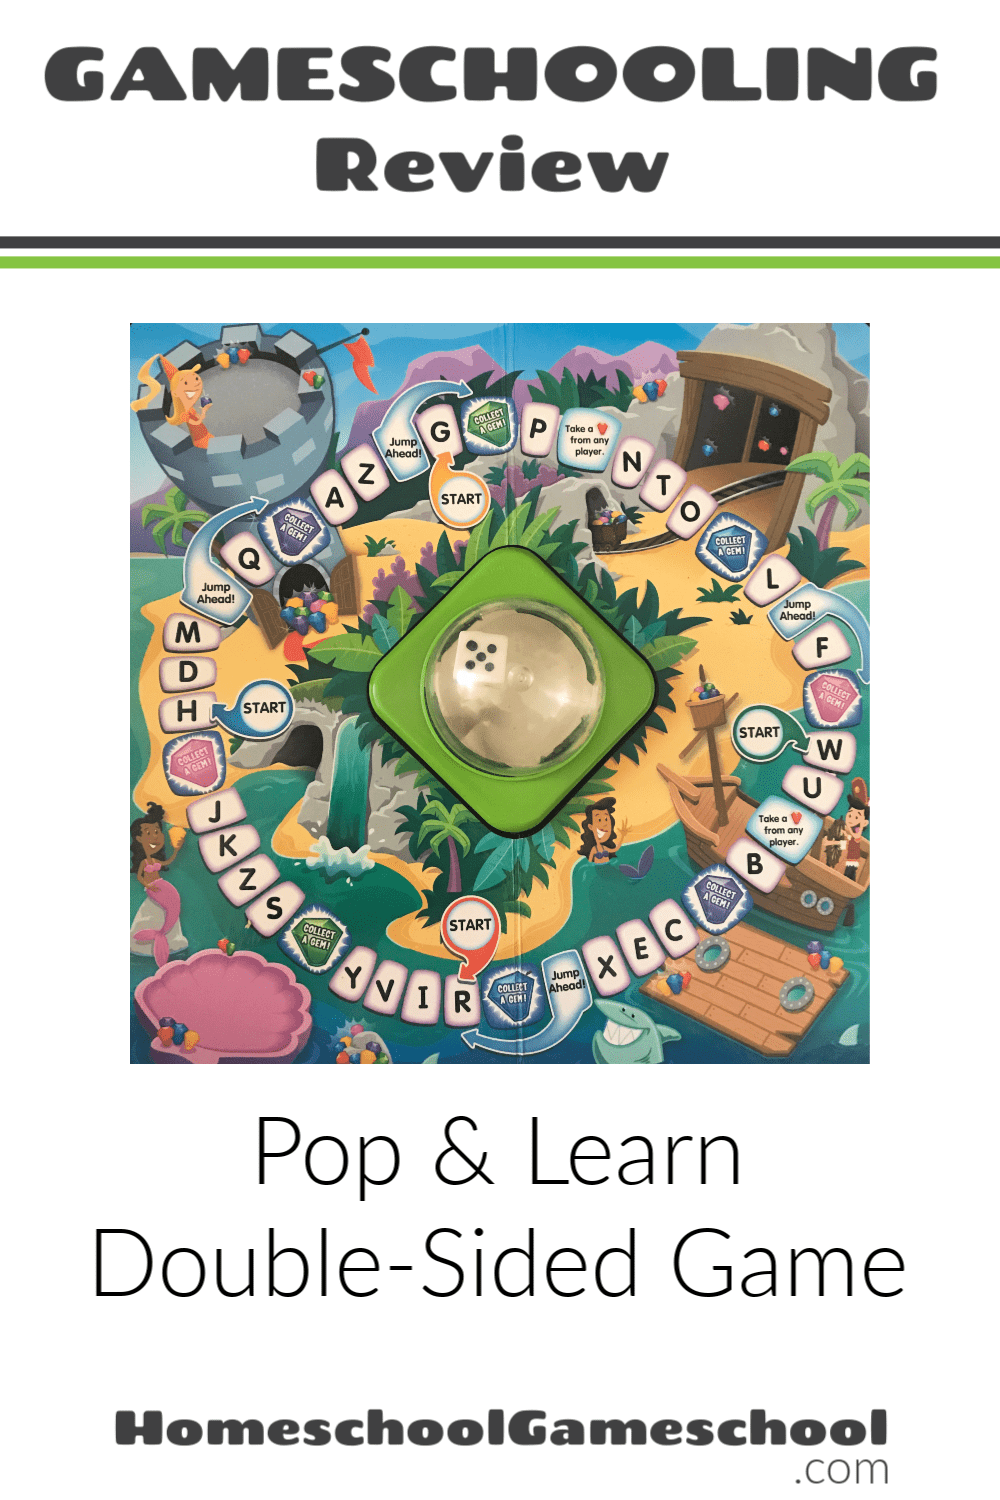 Pop & Learn Math/Reading Game Review